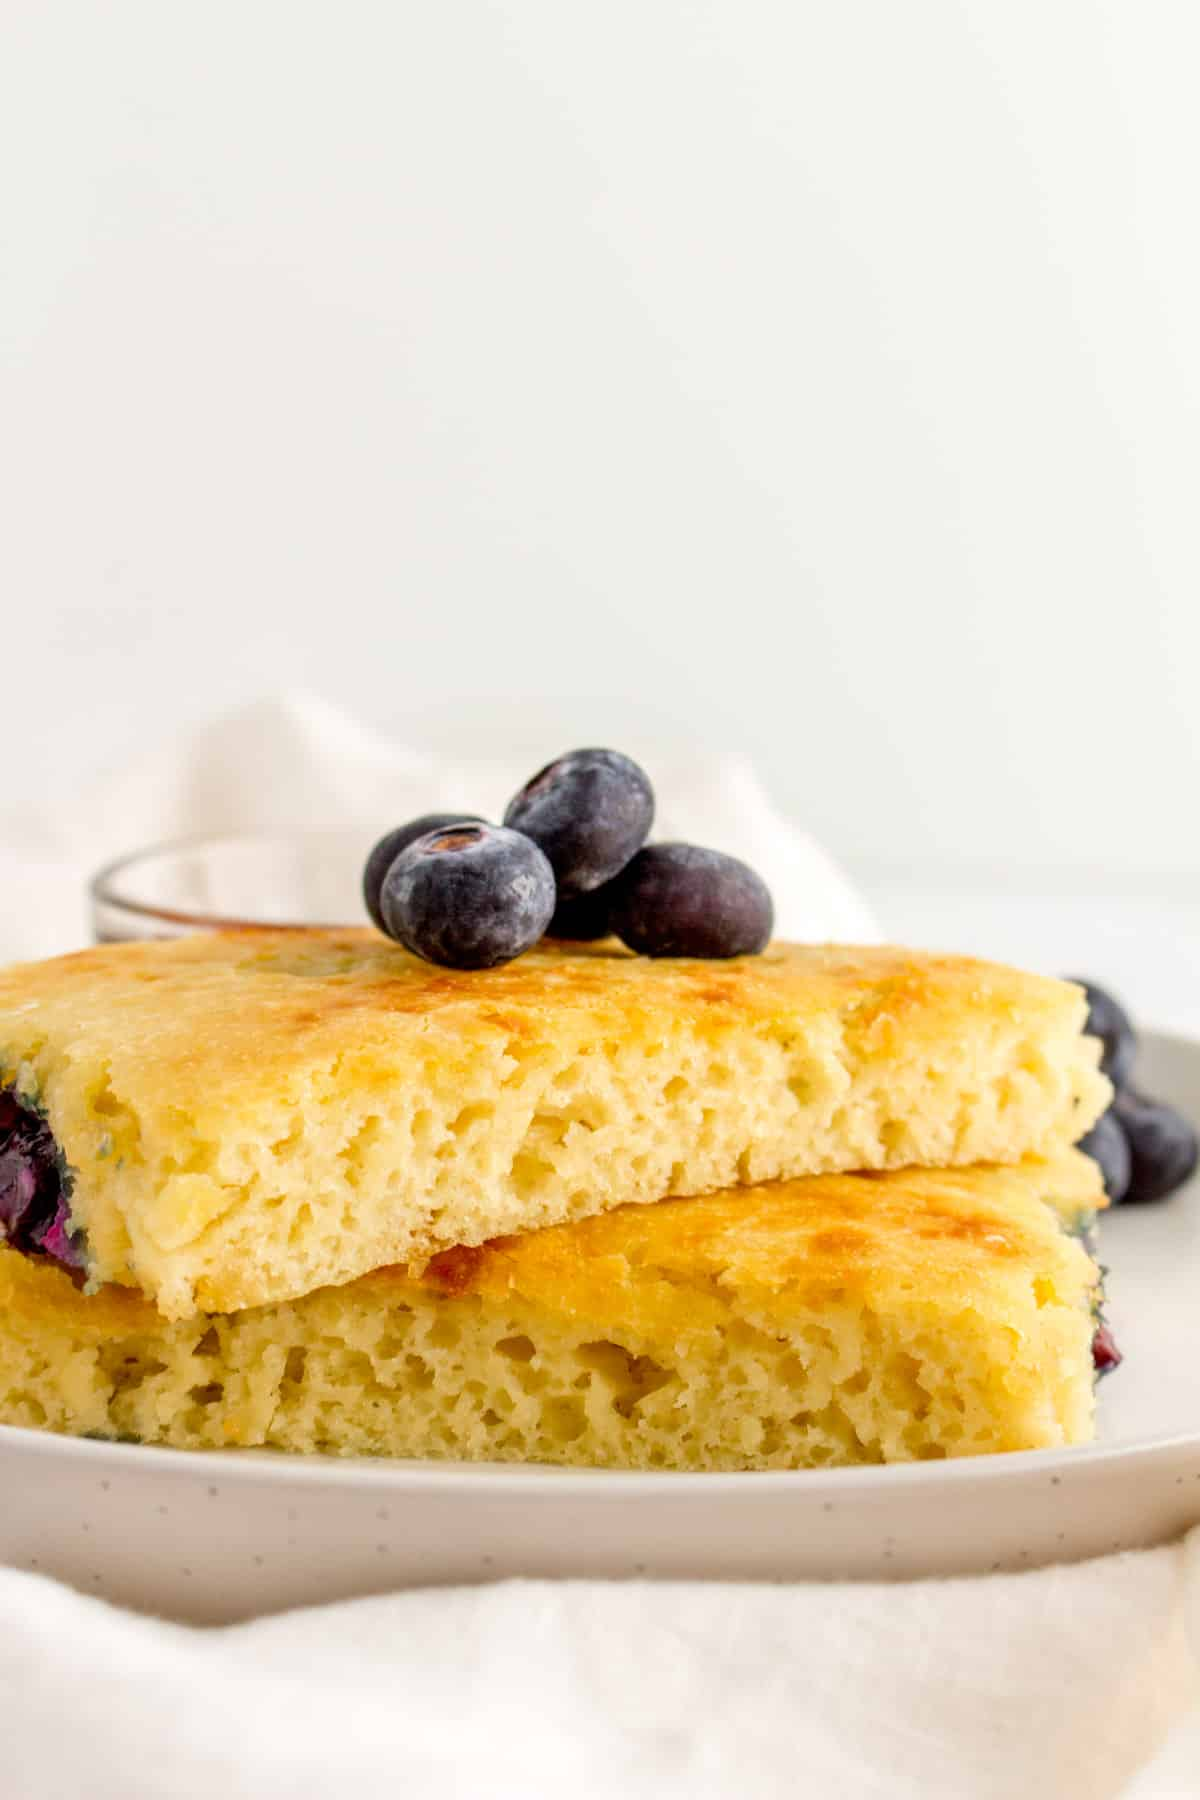 A stack of two sheet pan pancakes with blueberries on top.